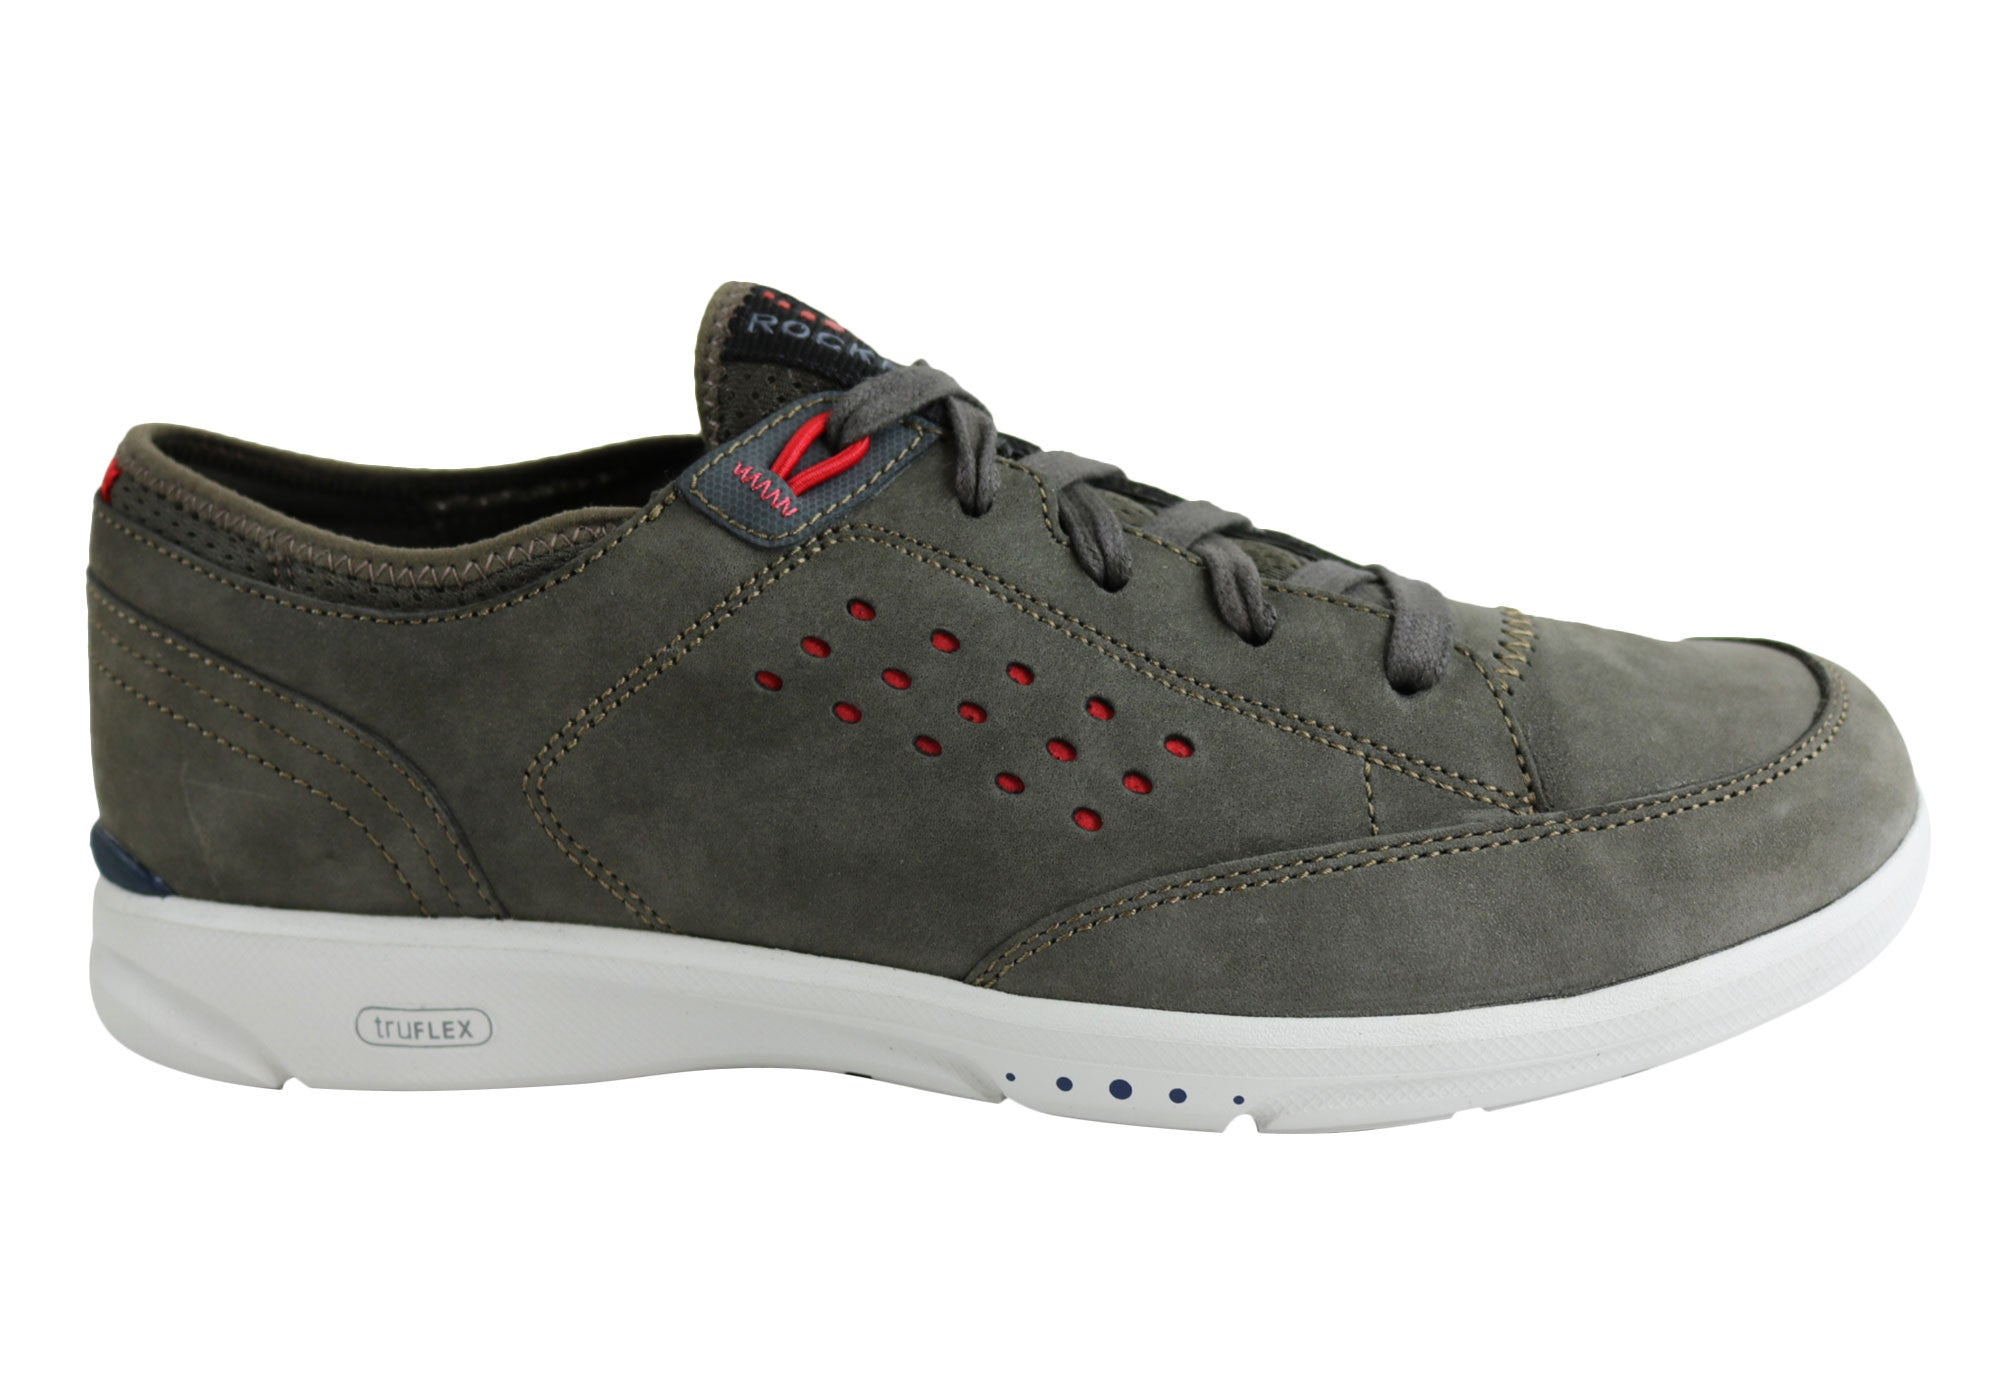 NEW-ROCKPORT-MENS-TRUFLEX-LACE-TO-TOE-COMFORT-